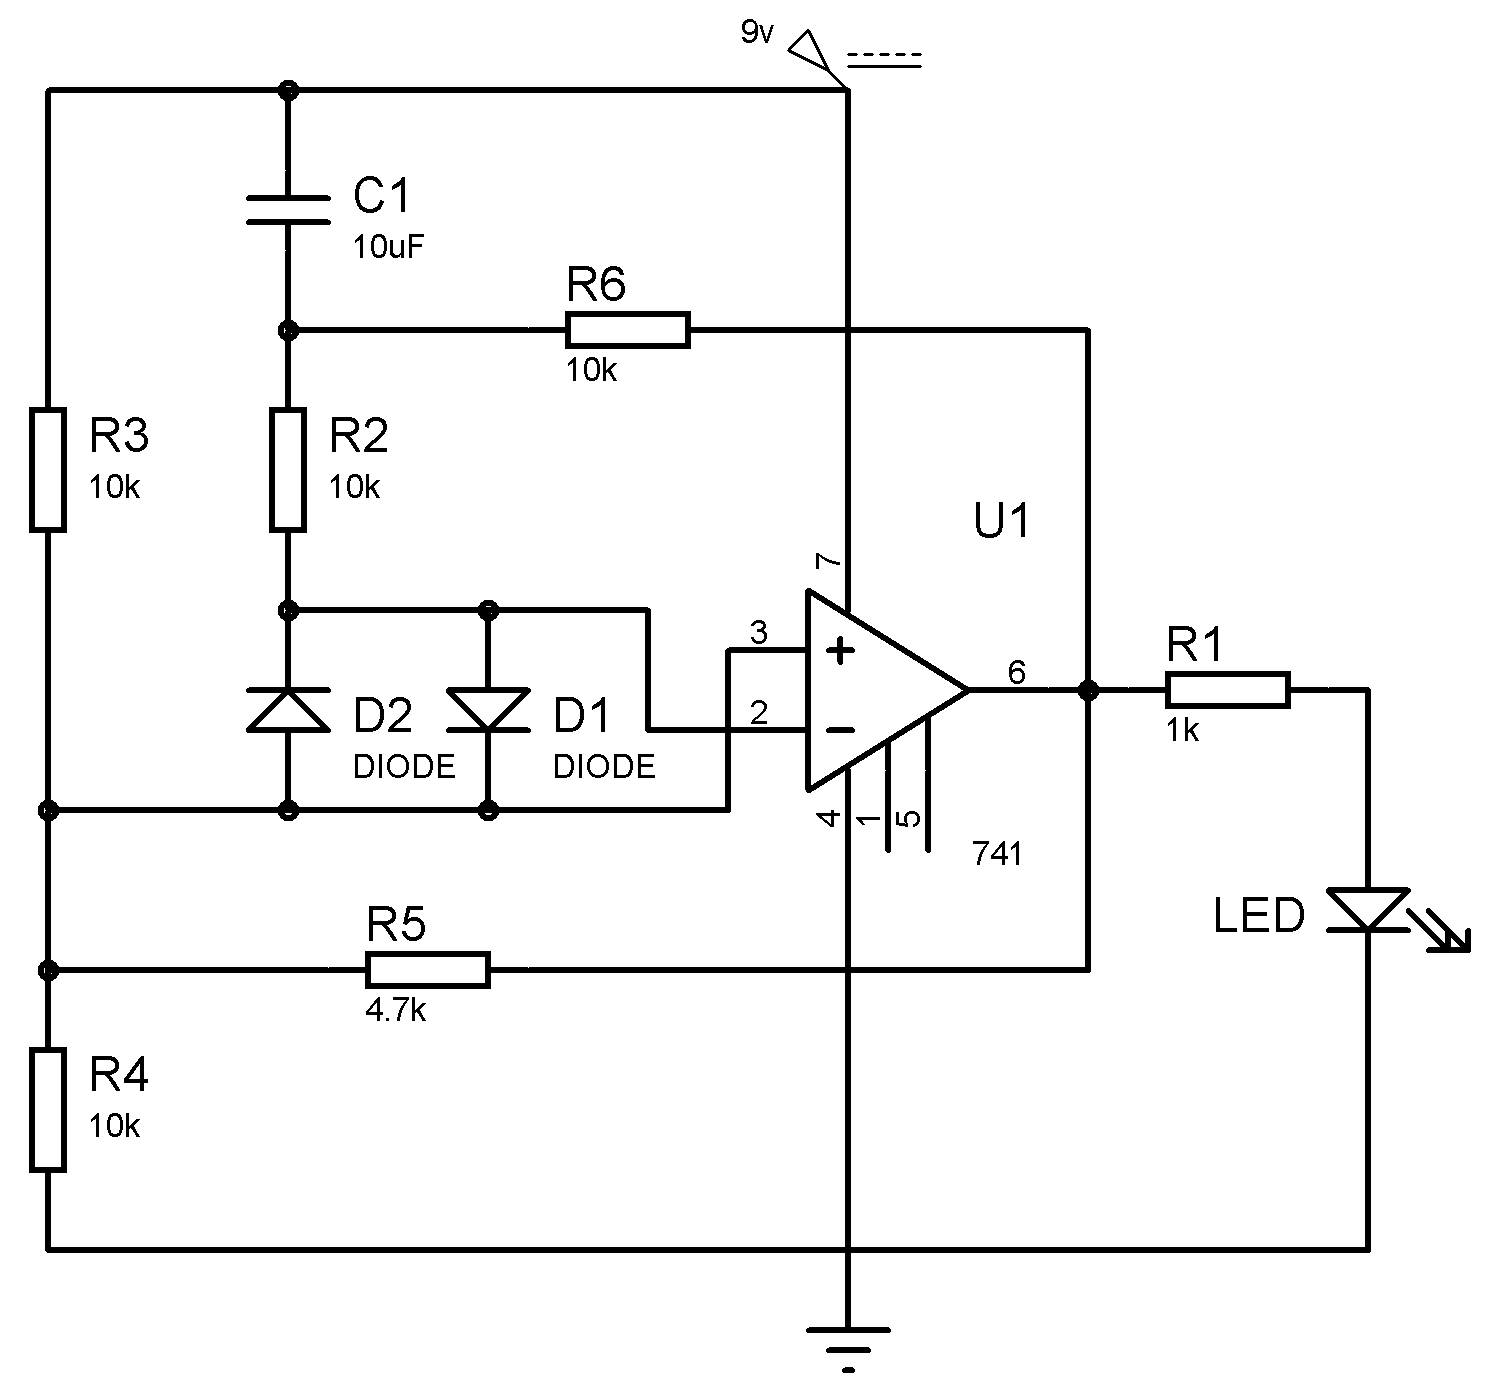 op amp ic lm741 tester circuit diagram rh circuitdigest com operational transconductance amplifier circuit diagram simple operational amplifier circuit diagram